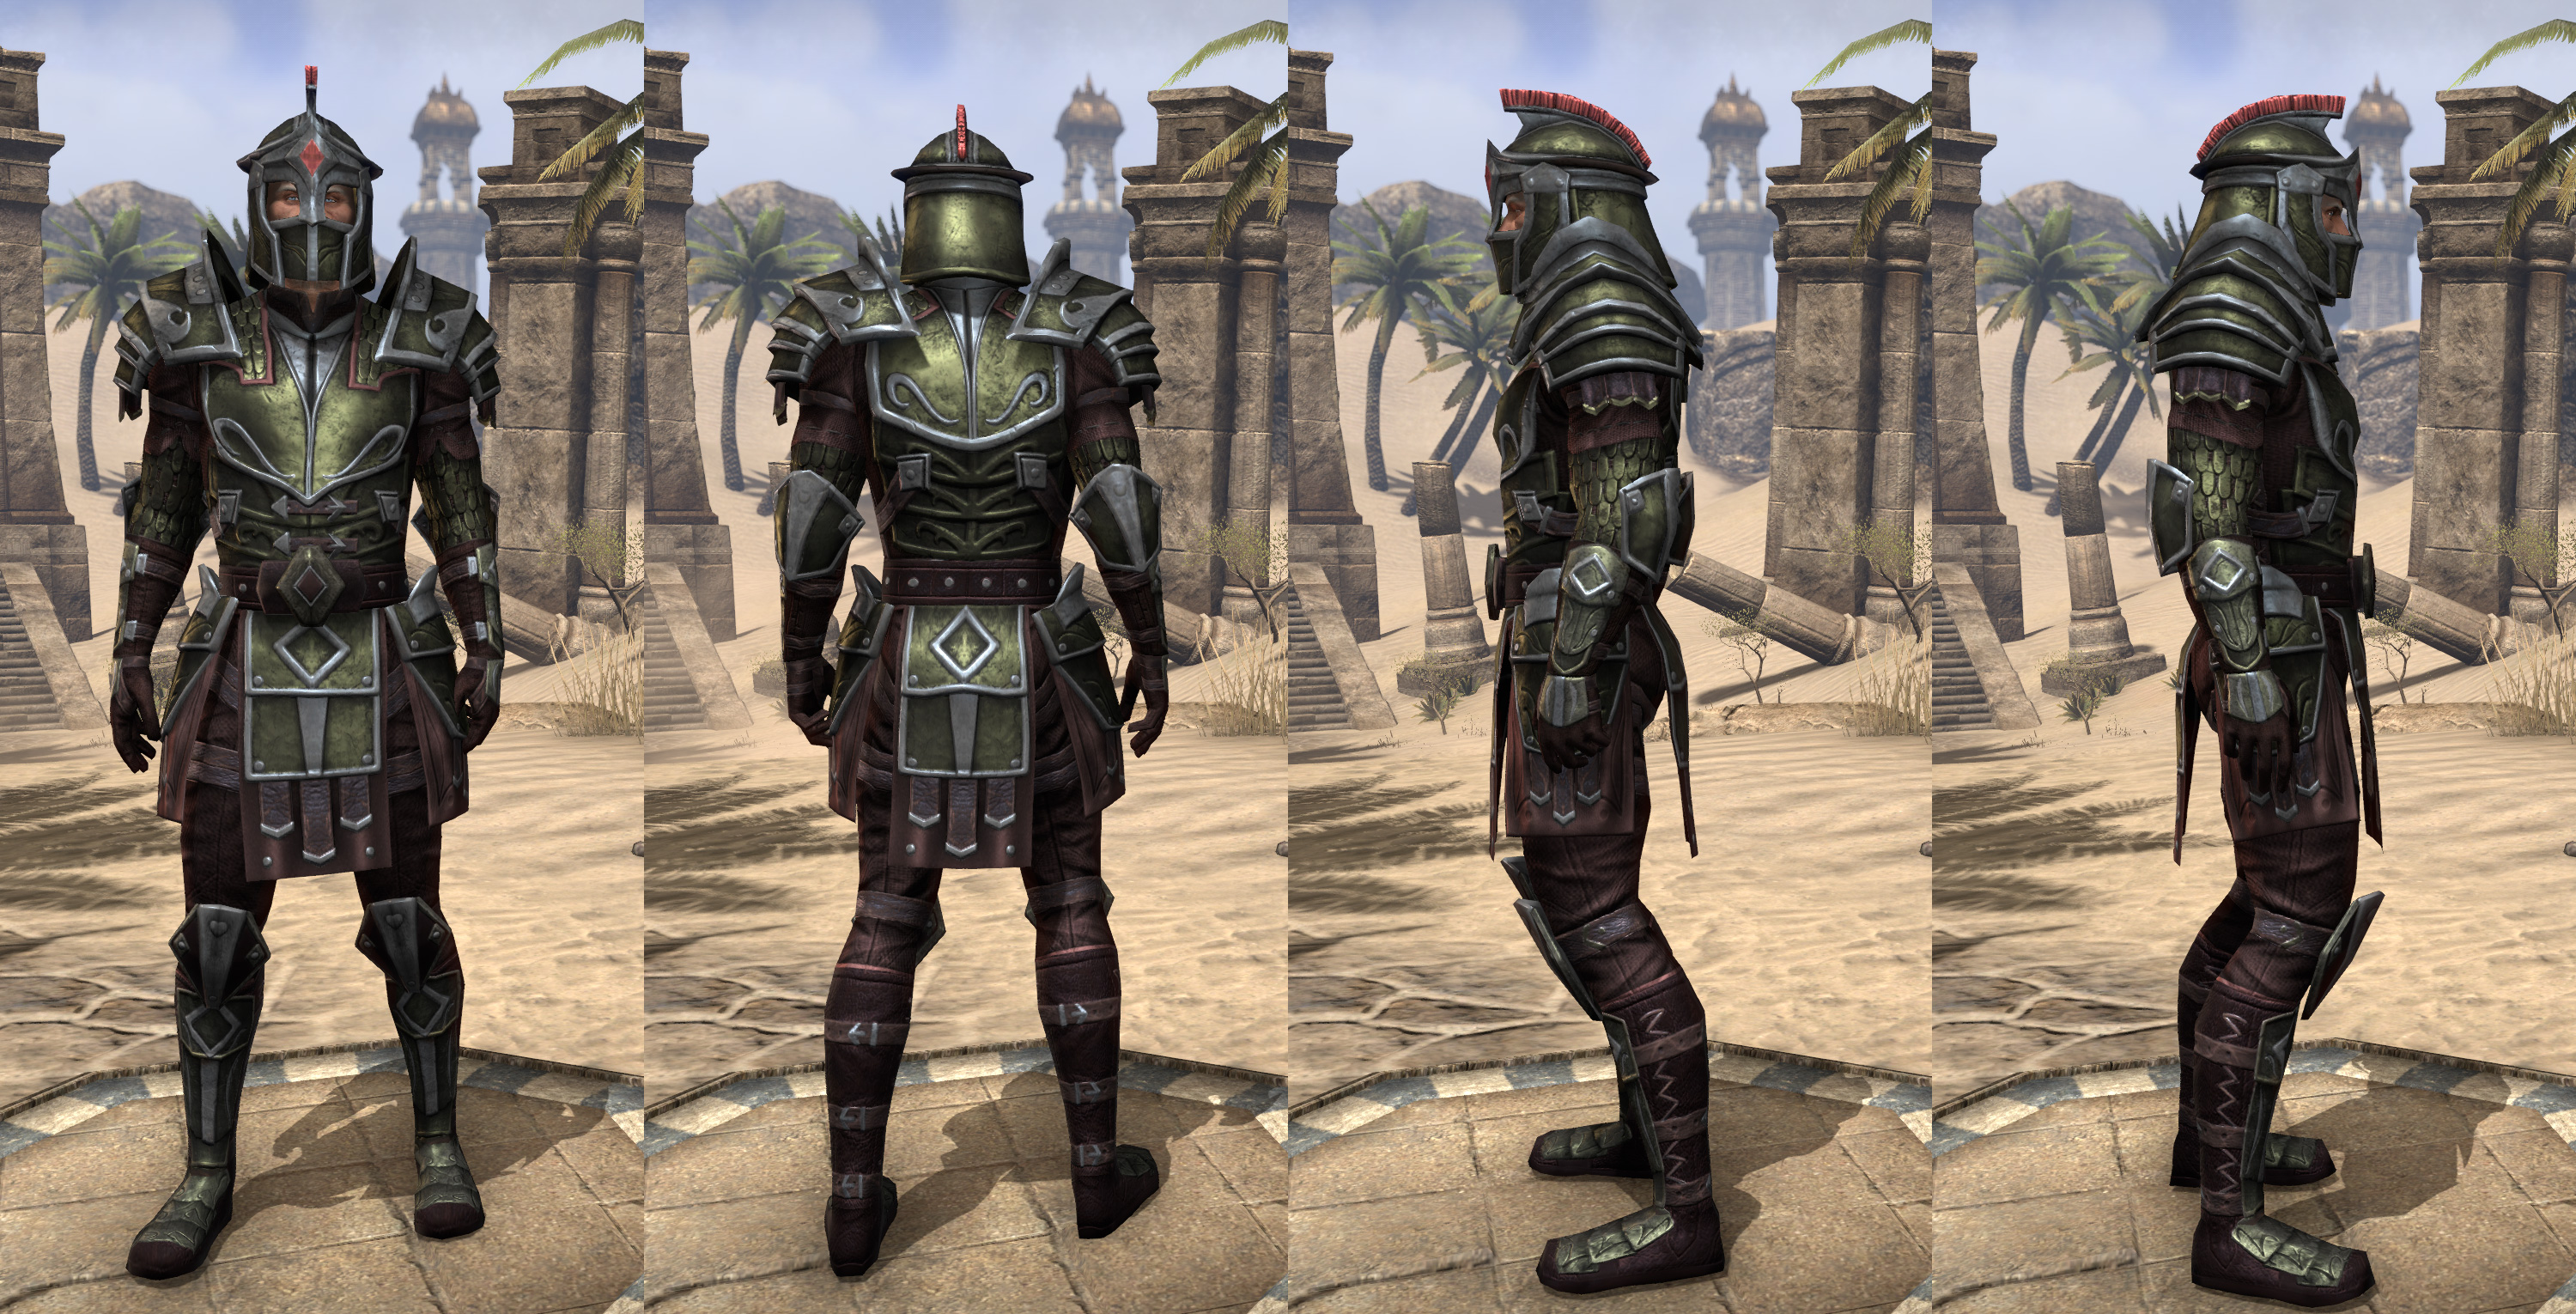 https://images.uesp.net/6/6e/ON-item-armor-Orichalc-Imperial-Male.jpg